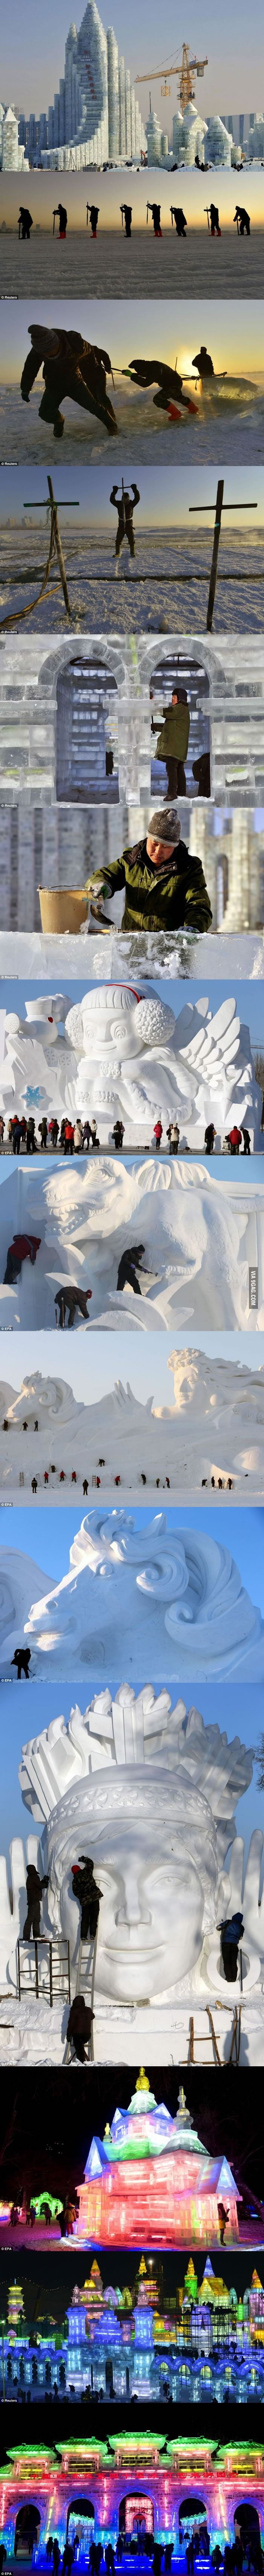 China built a giant frozen castle entirely from ice. It's created for the 30th Harbin Ice and Snow Festival.